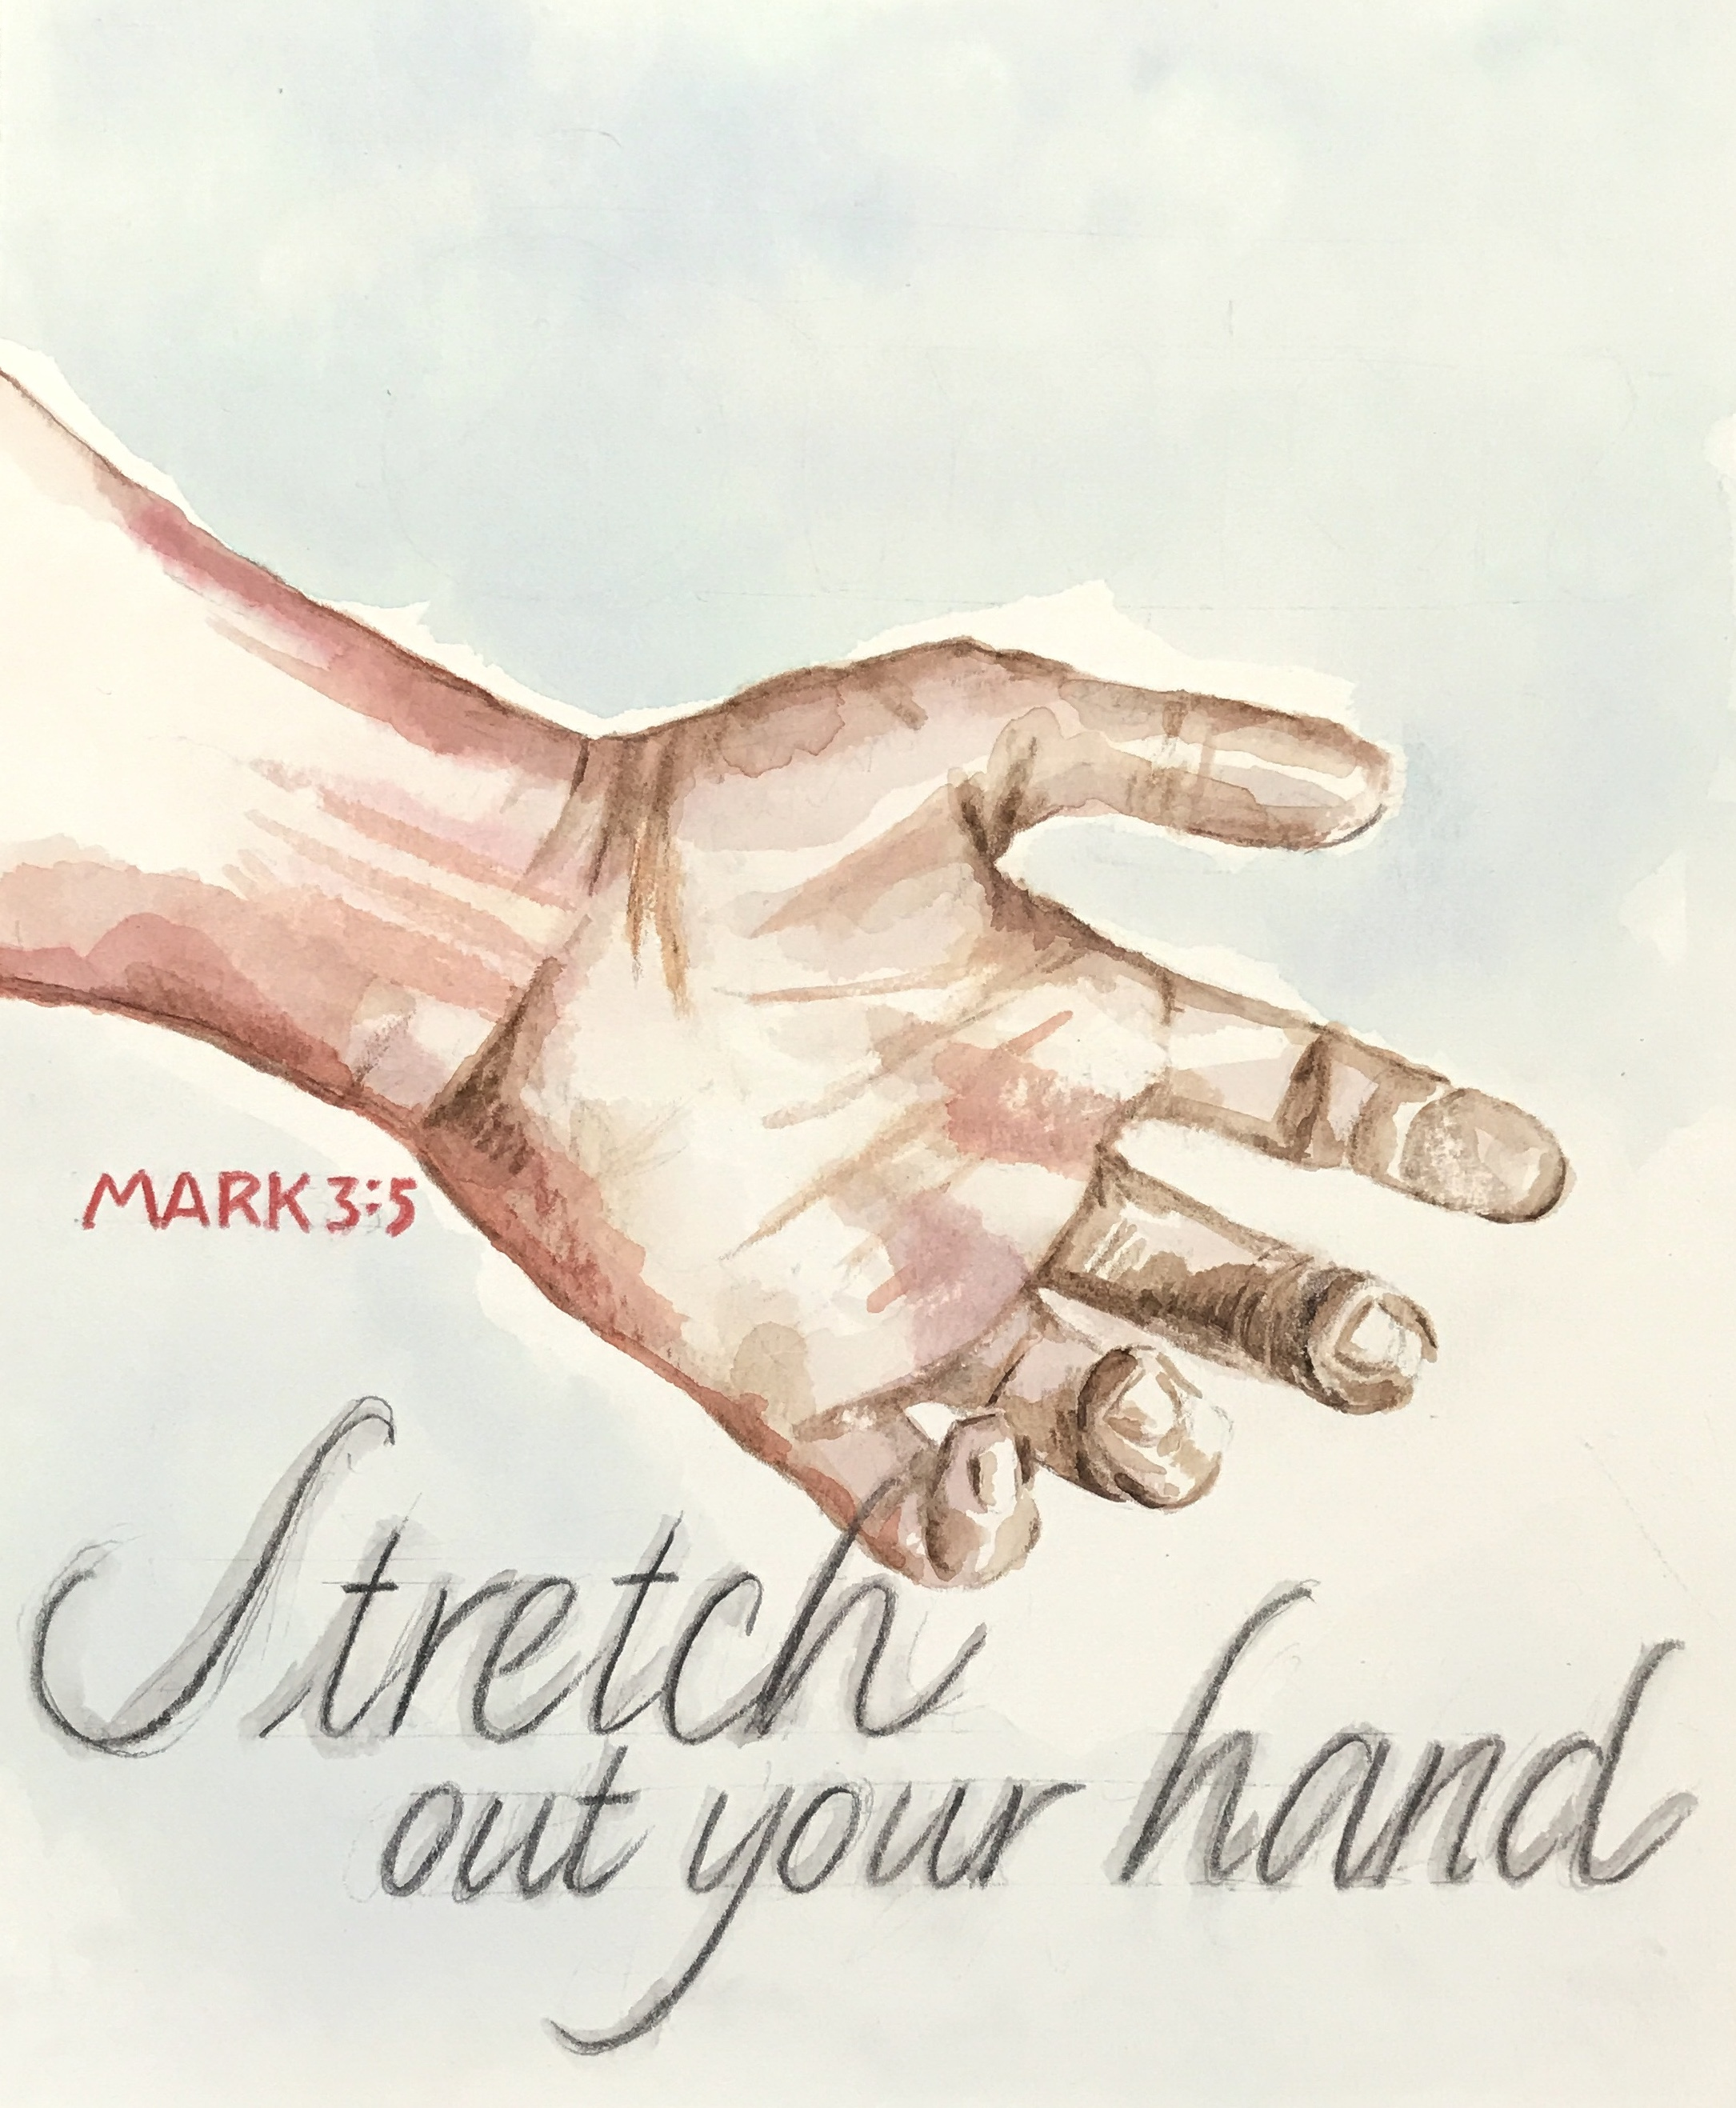 Stretch out your hand.jpg